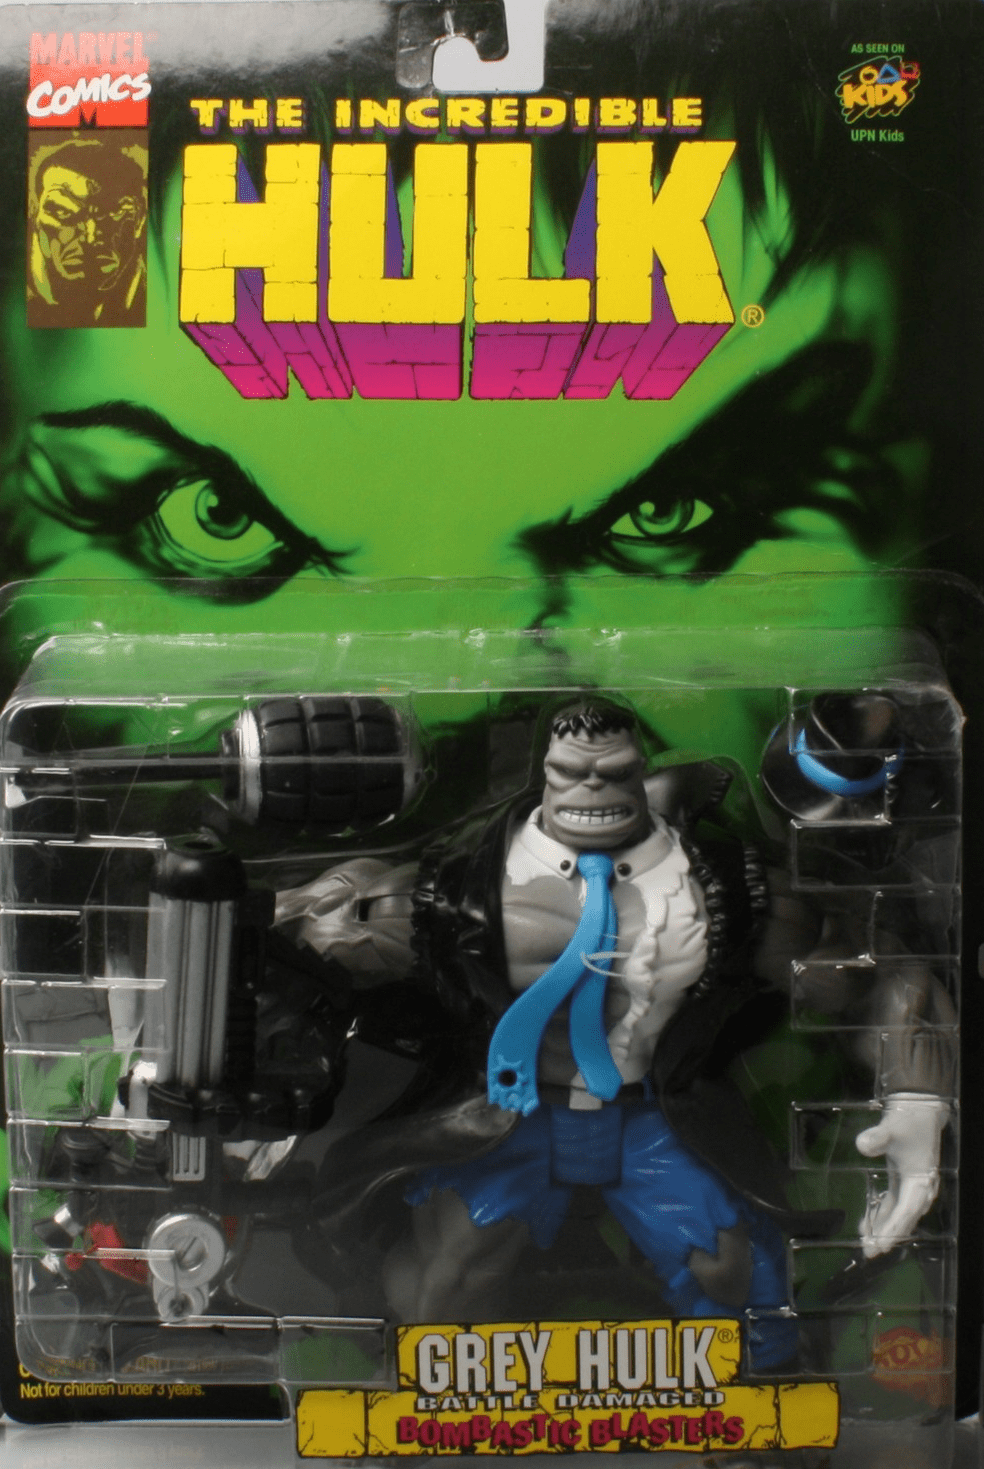 The Incredible Hulk Bombastic Blasters Battle Damaged Grey Hulk Figure